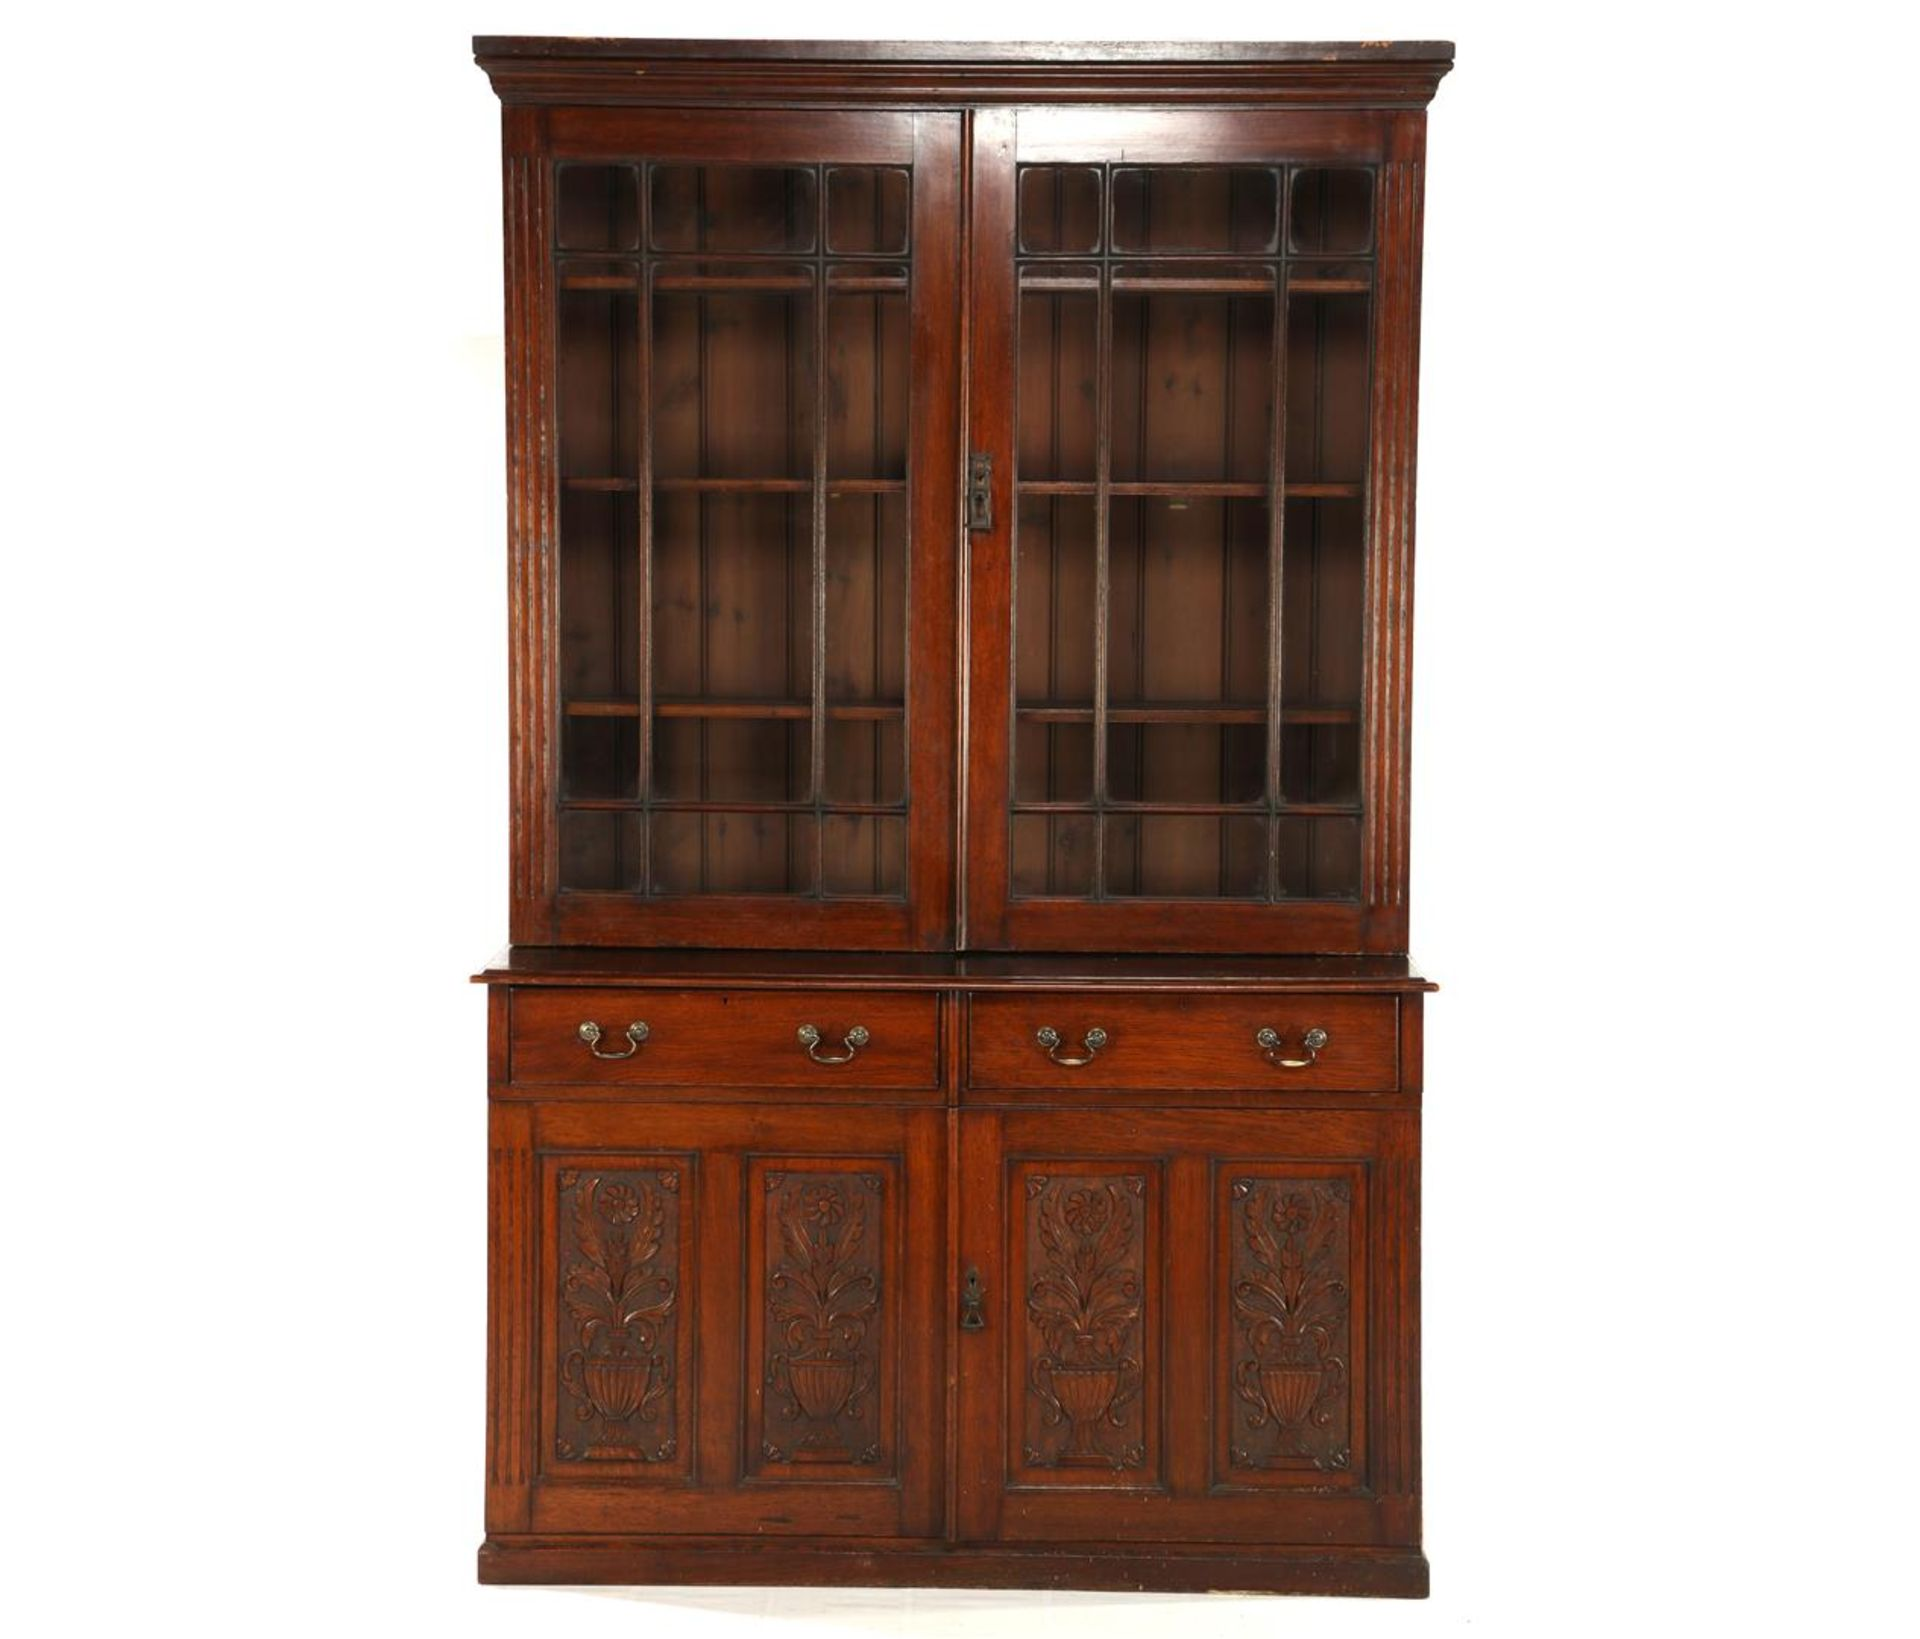 2-part oak sideboard with carved decor on the doors